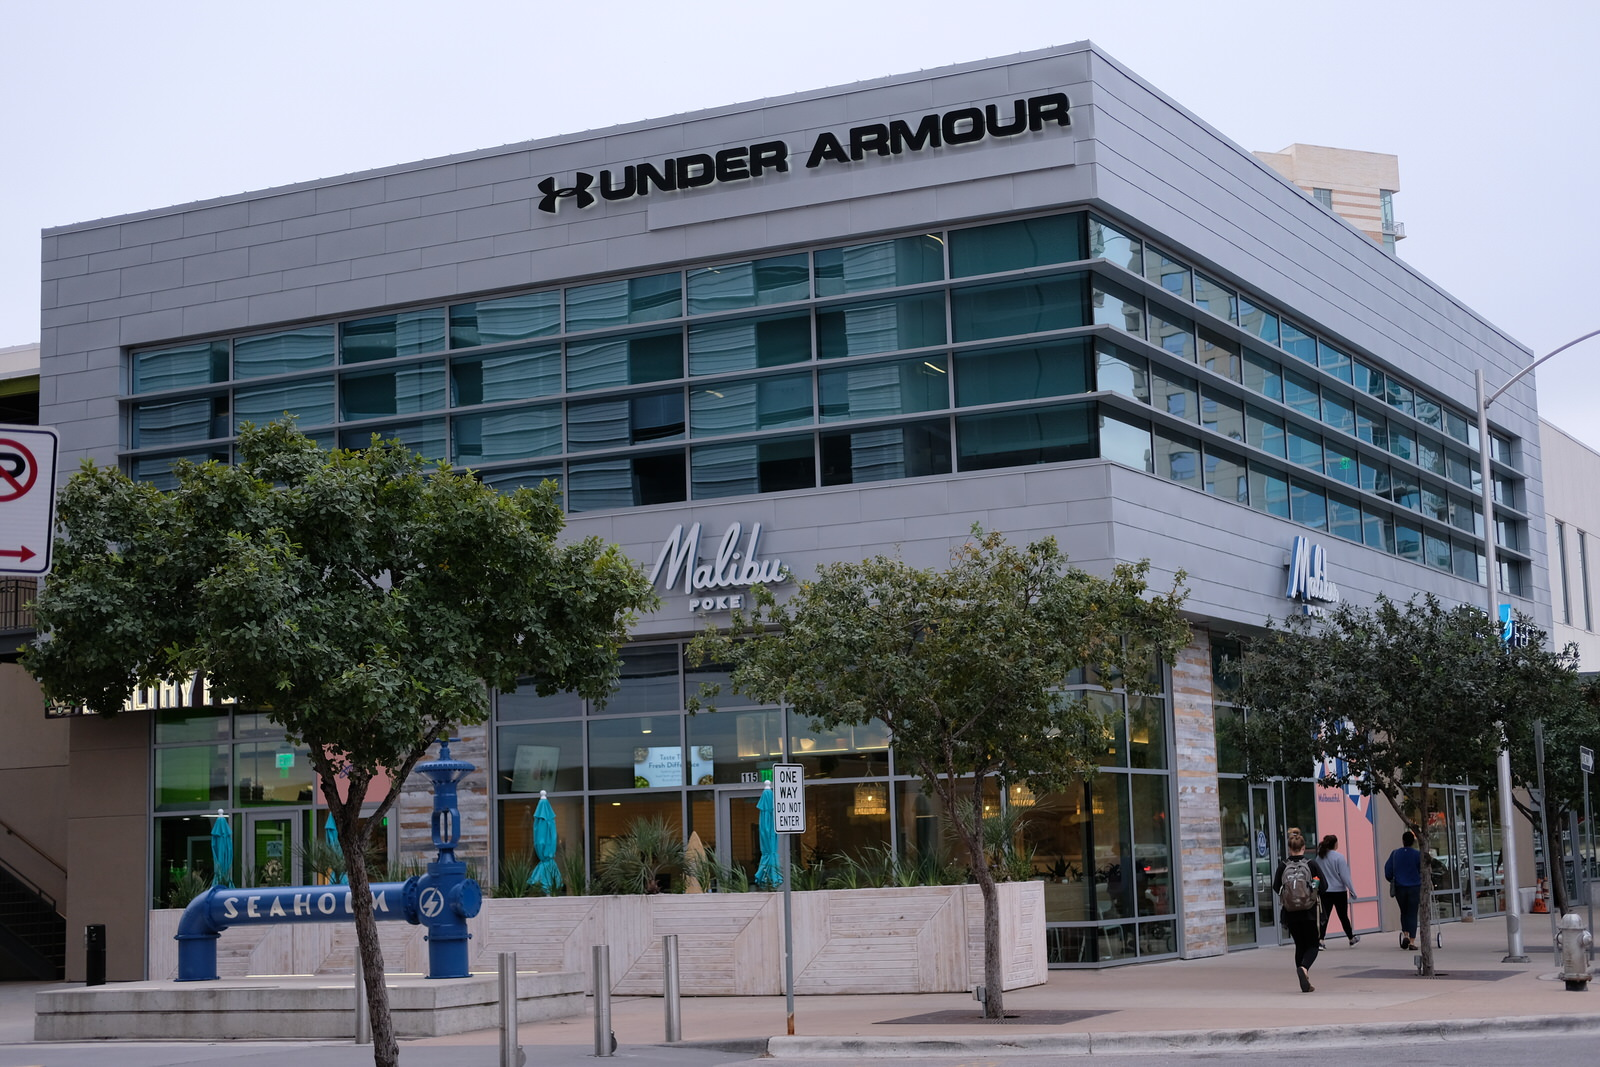 Under Armour office in downtown Austin, Texas.